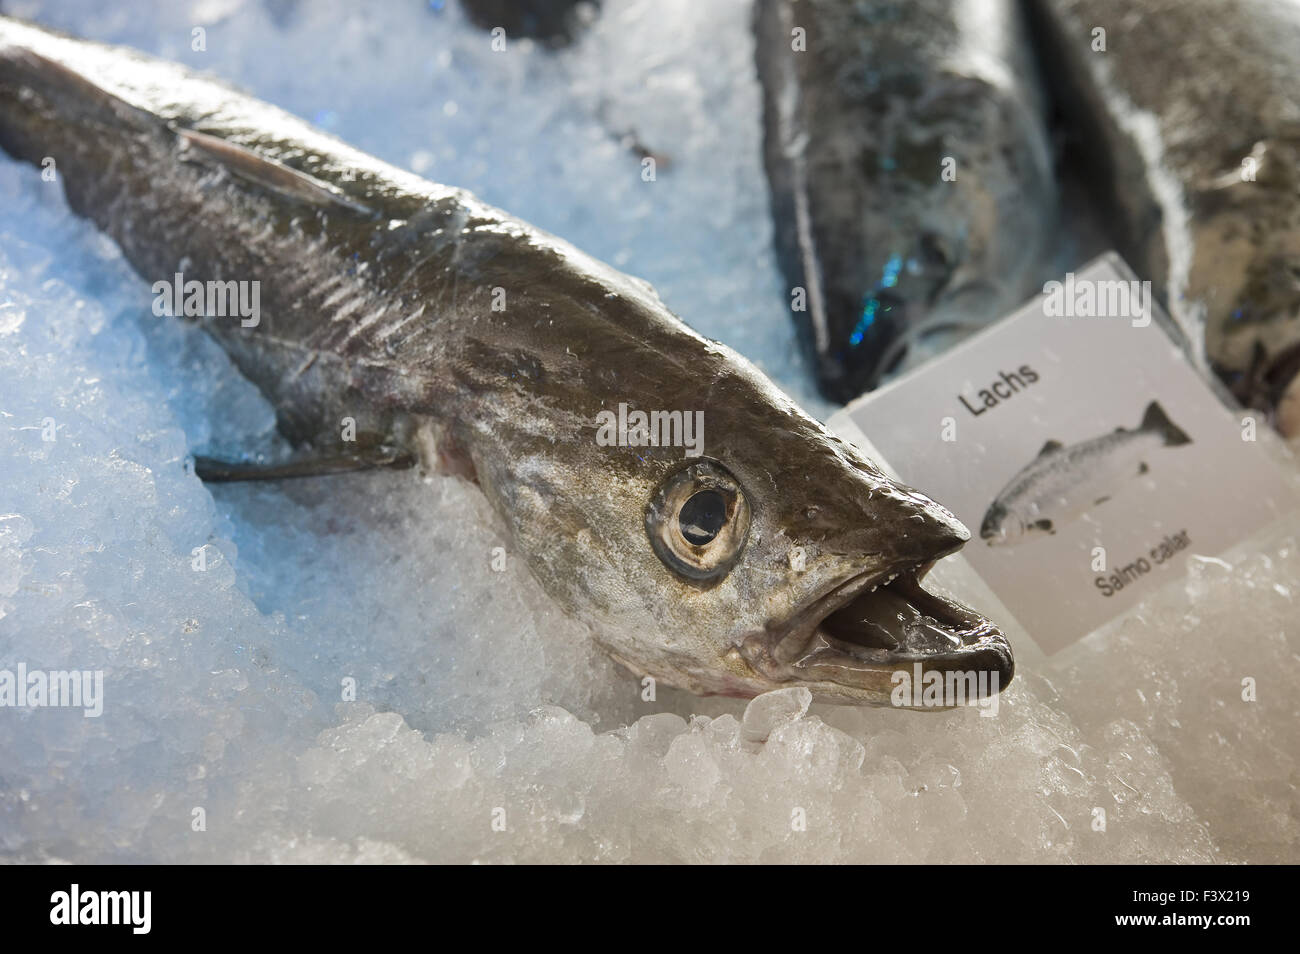 Salmon - Stock Image